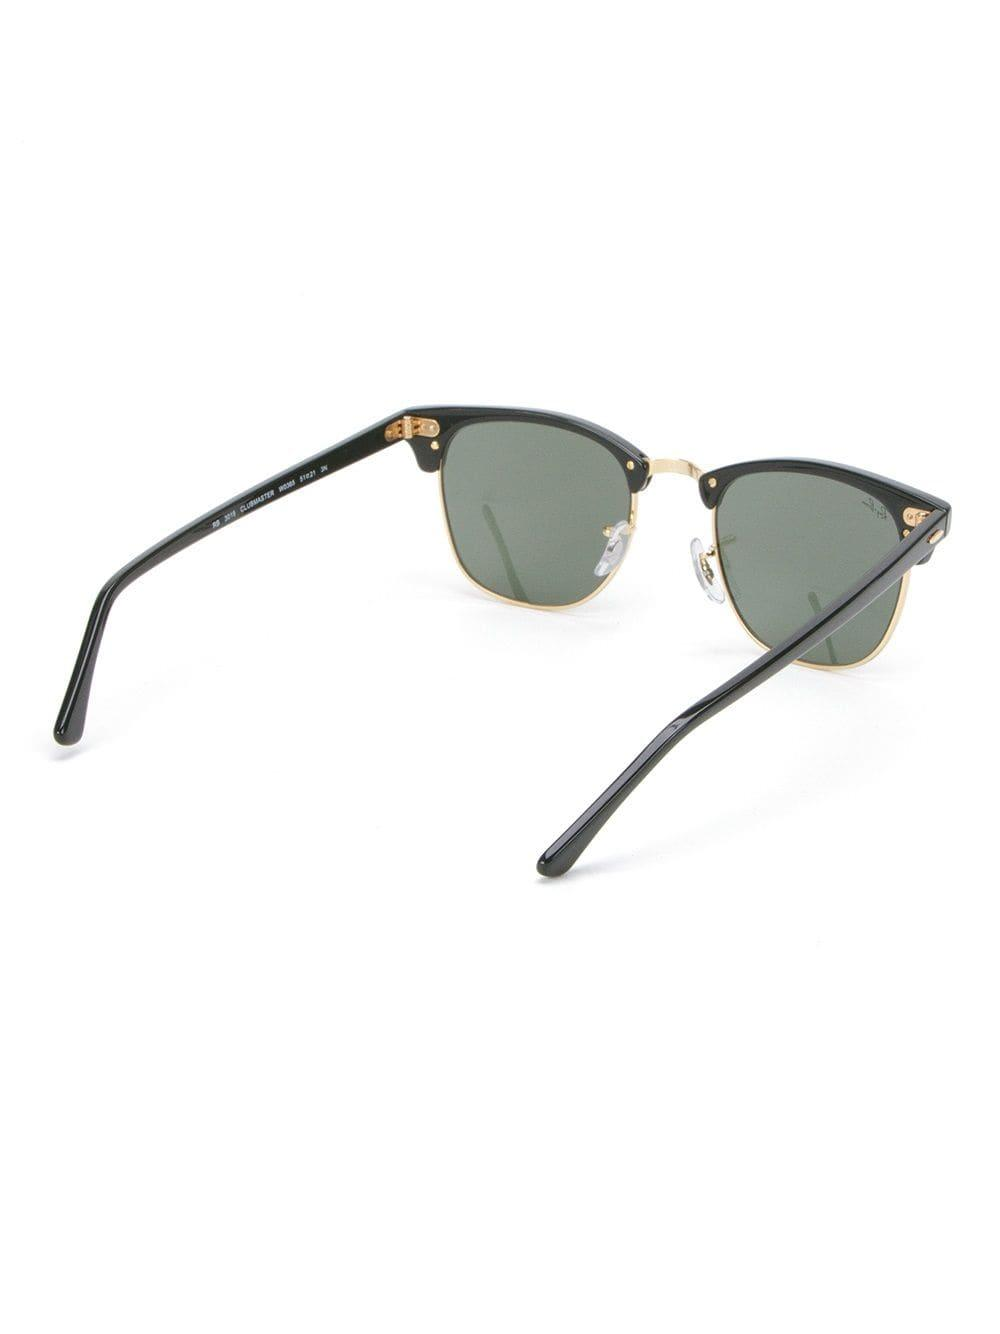 Ray-Ban 'clubmaster' Sunglasses in Black (Green)